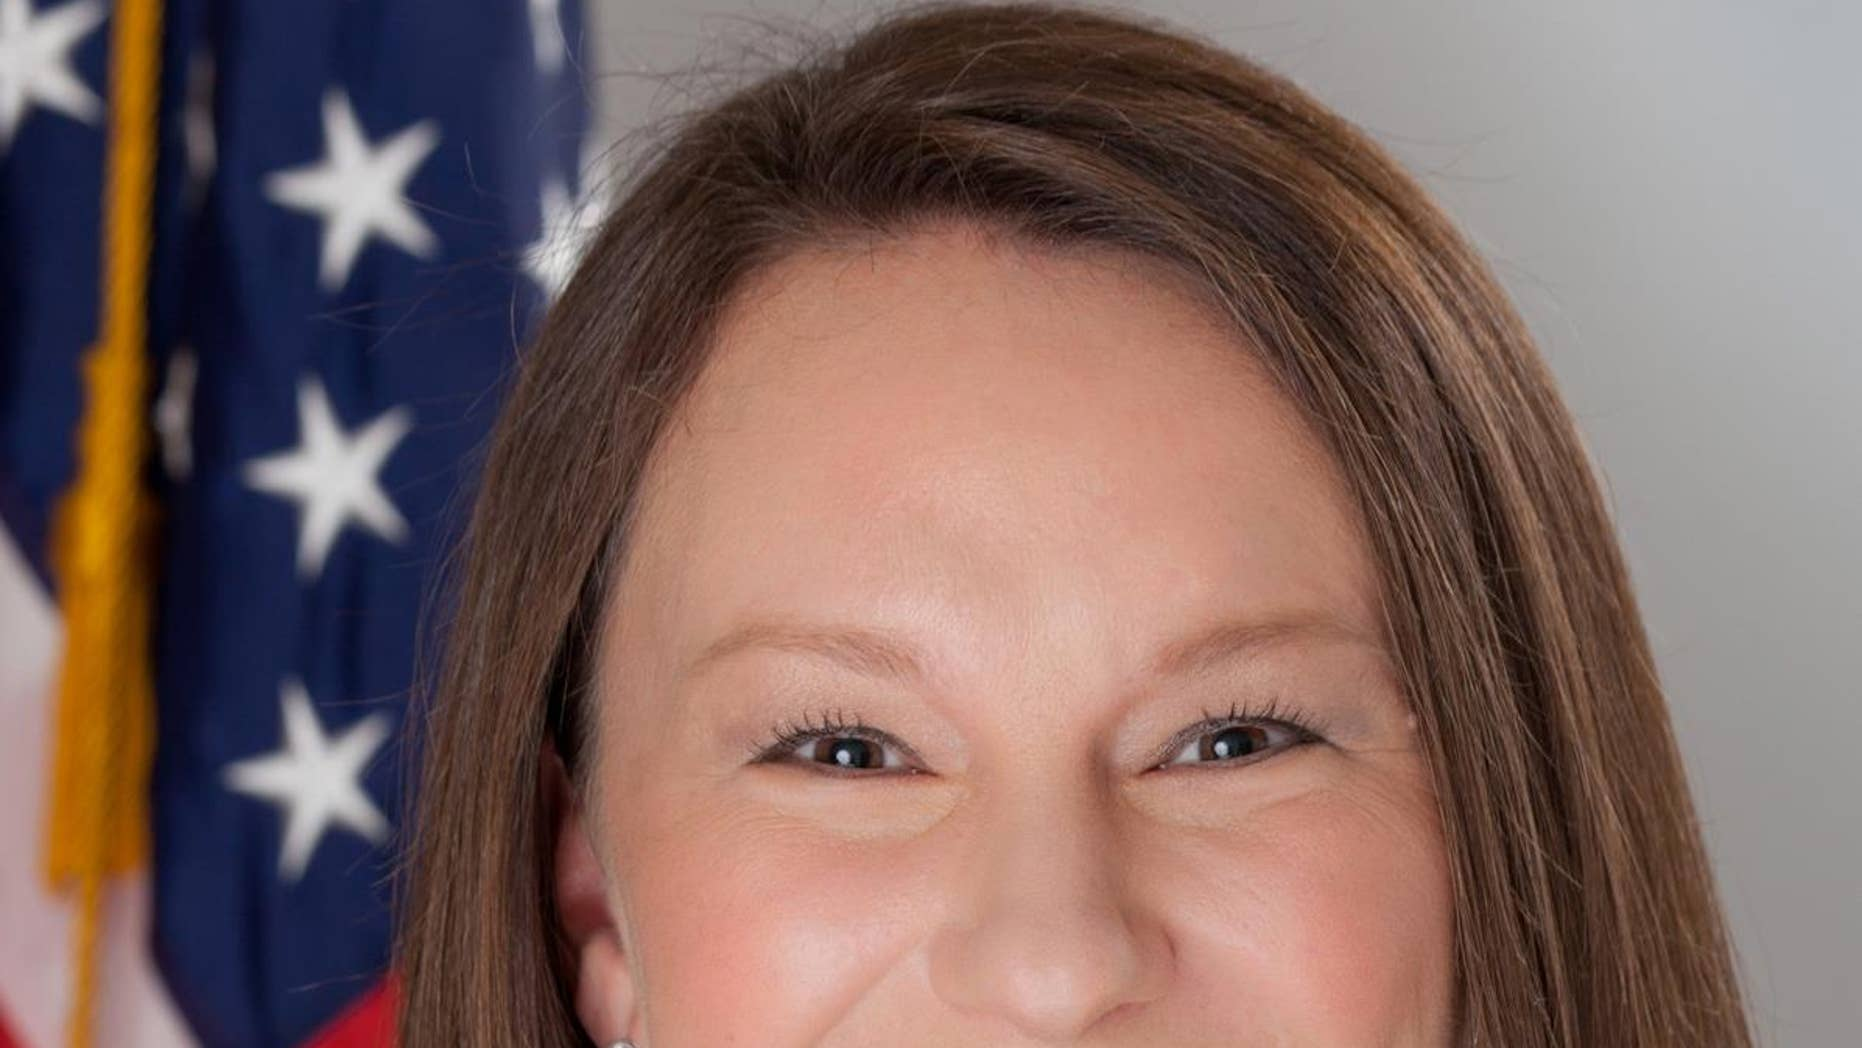 Alabama Republican Rep. Martha Roby who famously retracted the endorsement of then-candidate Donald Trump in 2016 was forced into a runoff election after failing to win the majority of votes.